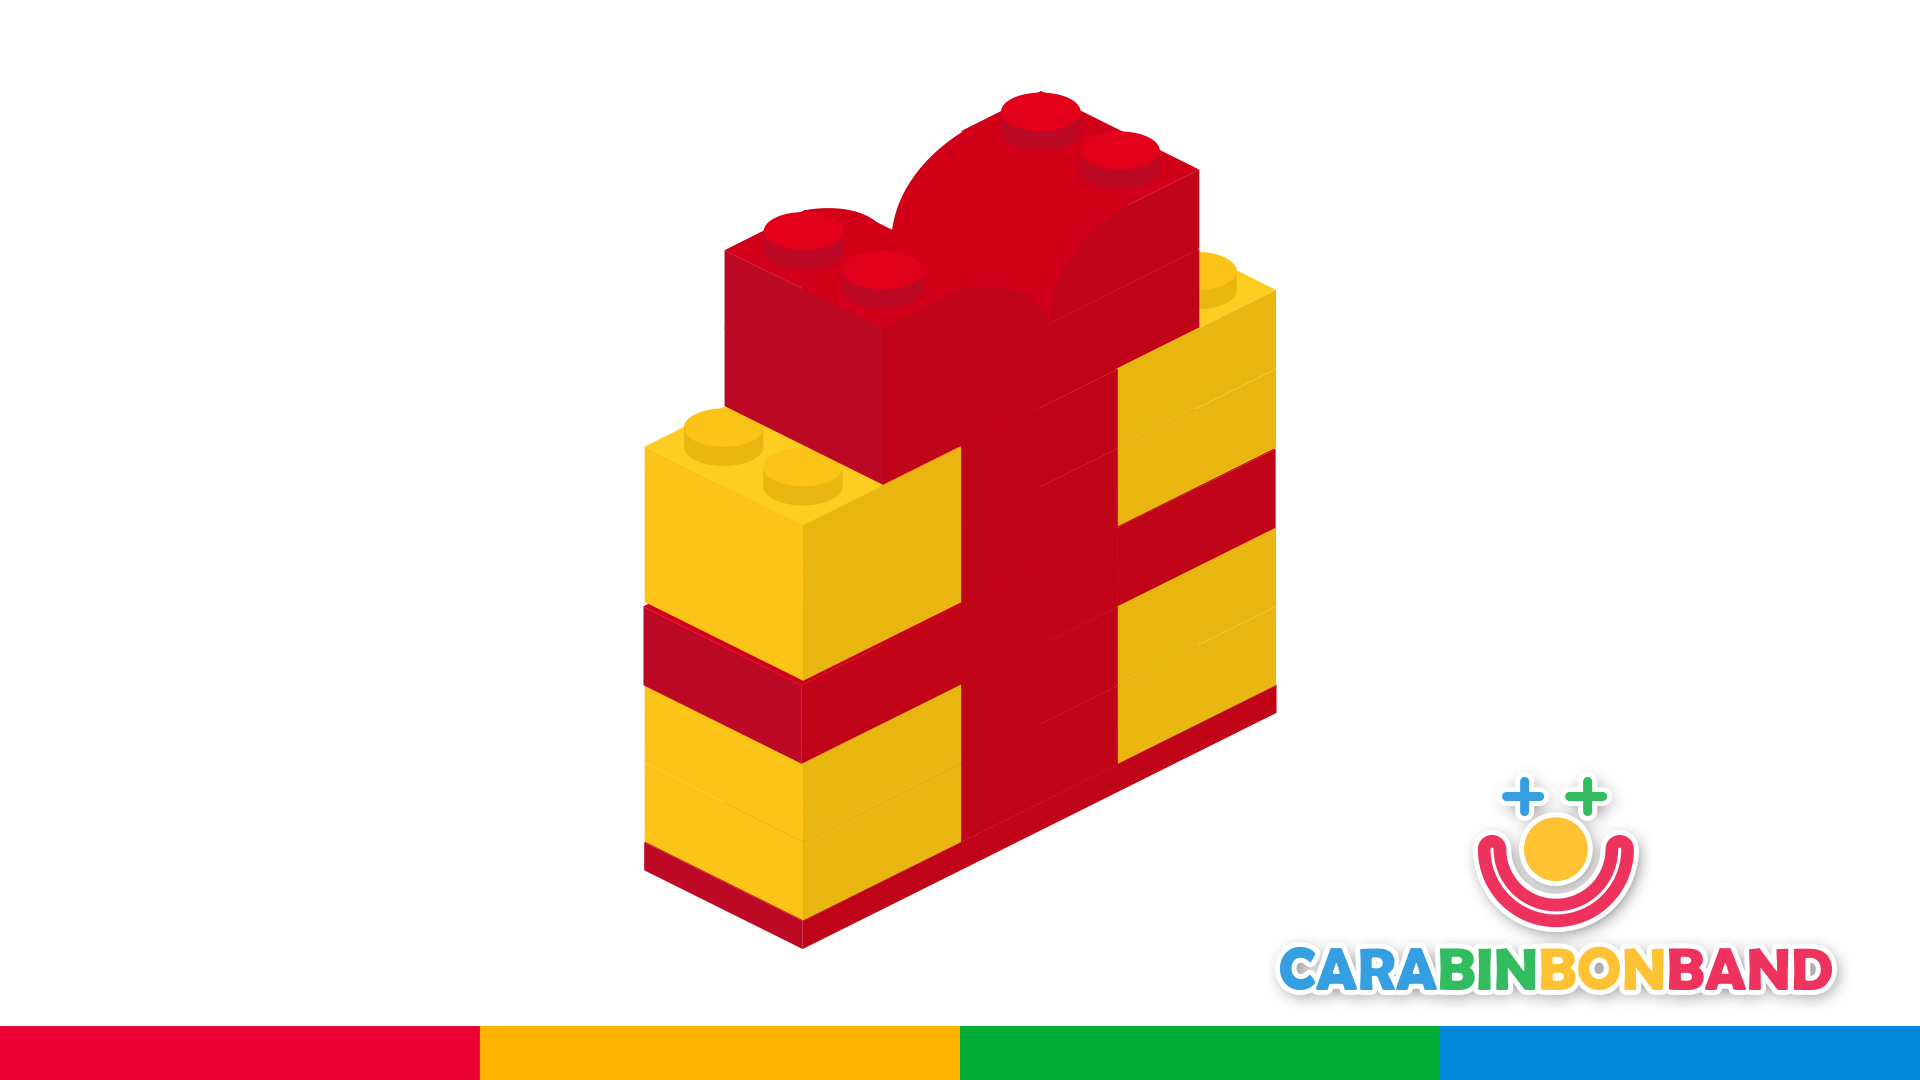 Easy LEGO constructions for children - how to make a gift